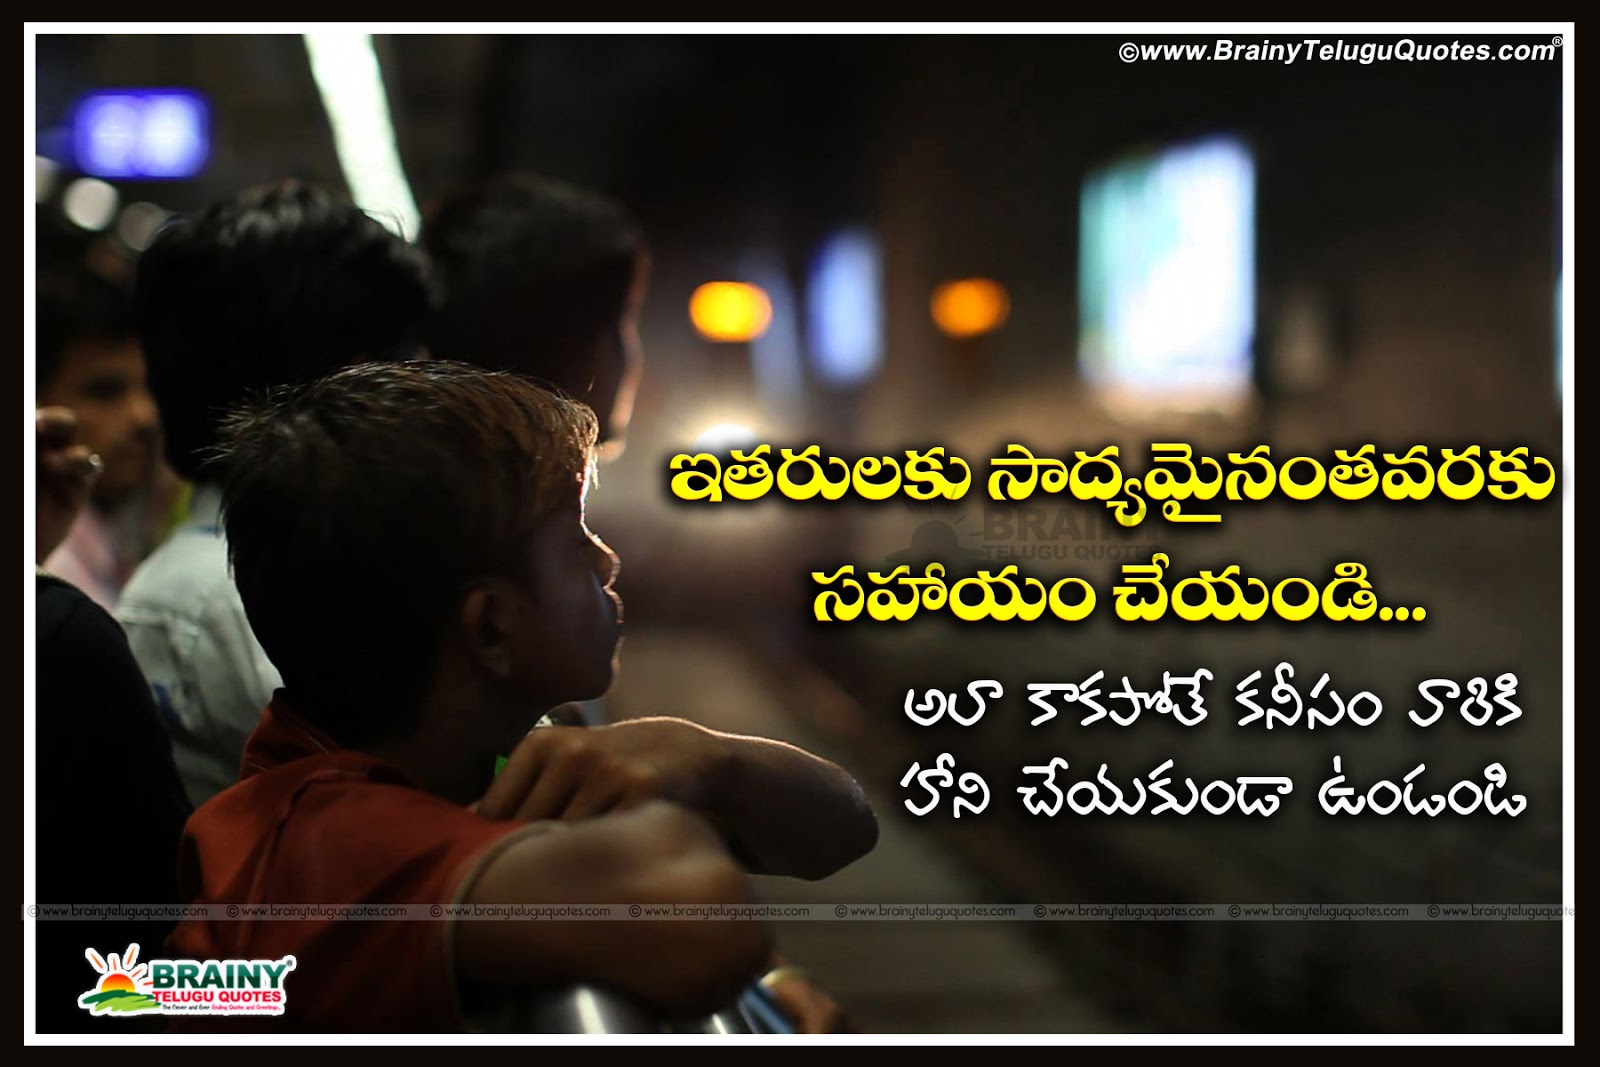 Quotes About Helping Helping Thoughts Quotes On Others In Telugu  Brainyteluguquotes